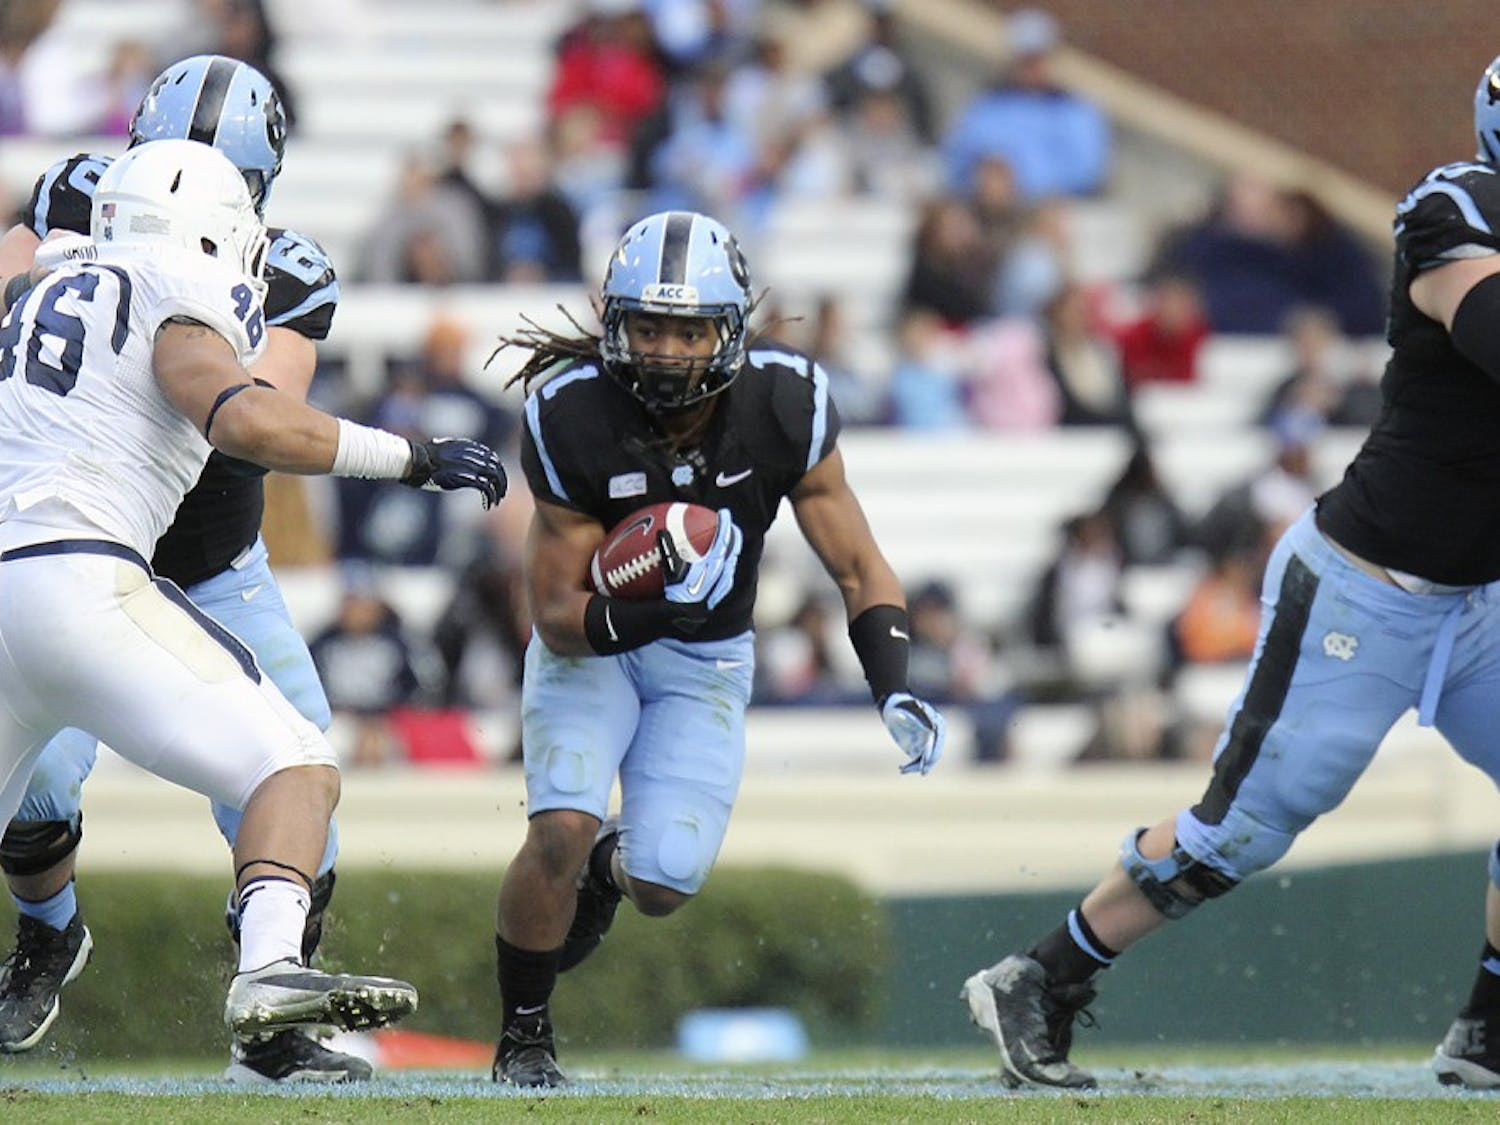 Photos from UNC football's game against Old Dominion on November 23 at Kenan Stadium in Chapel Hill.